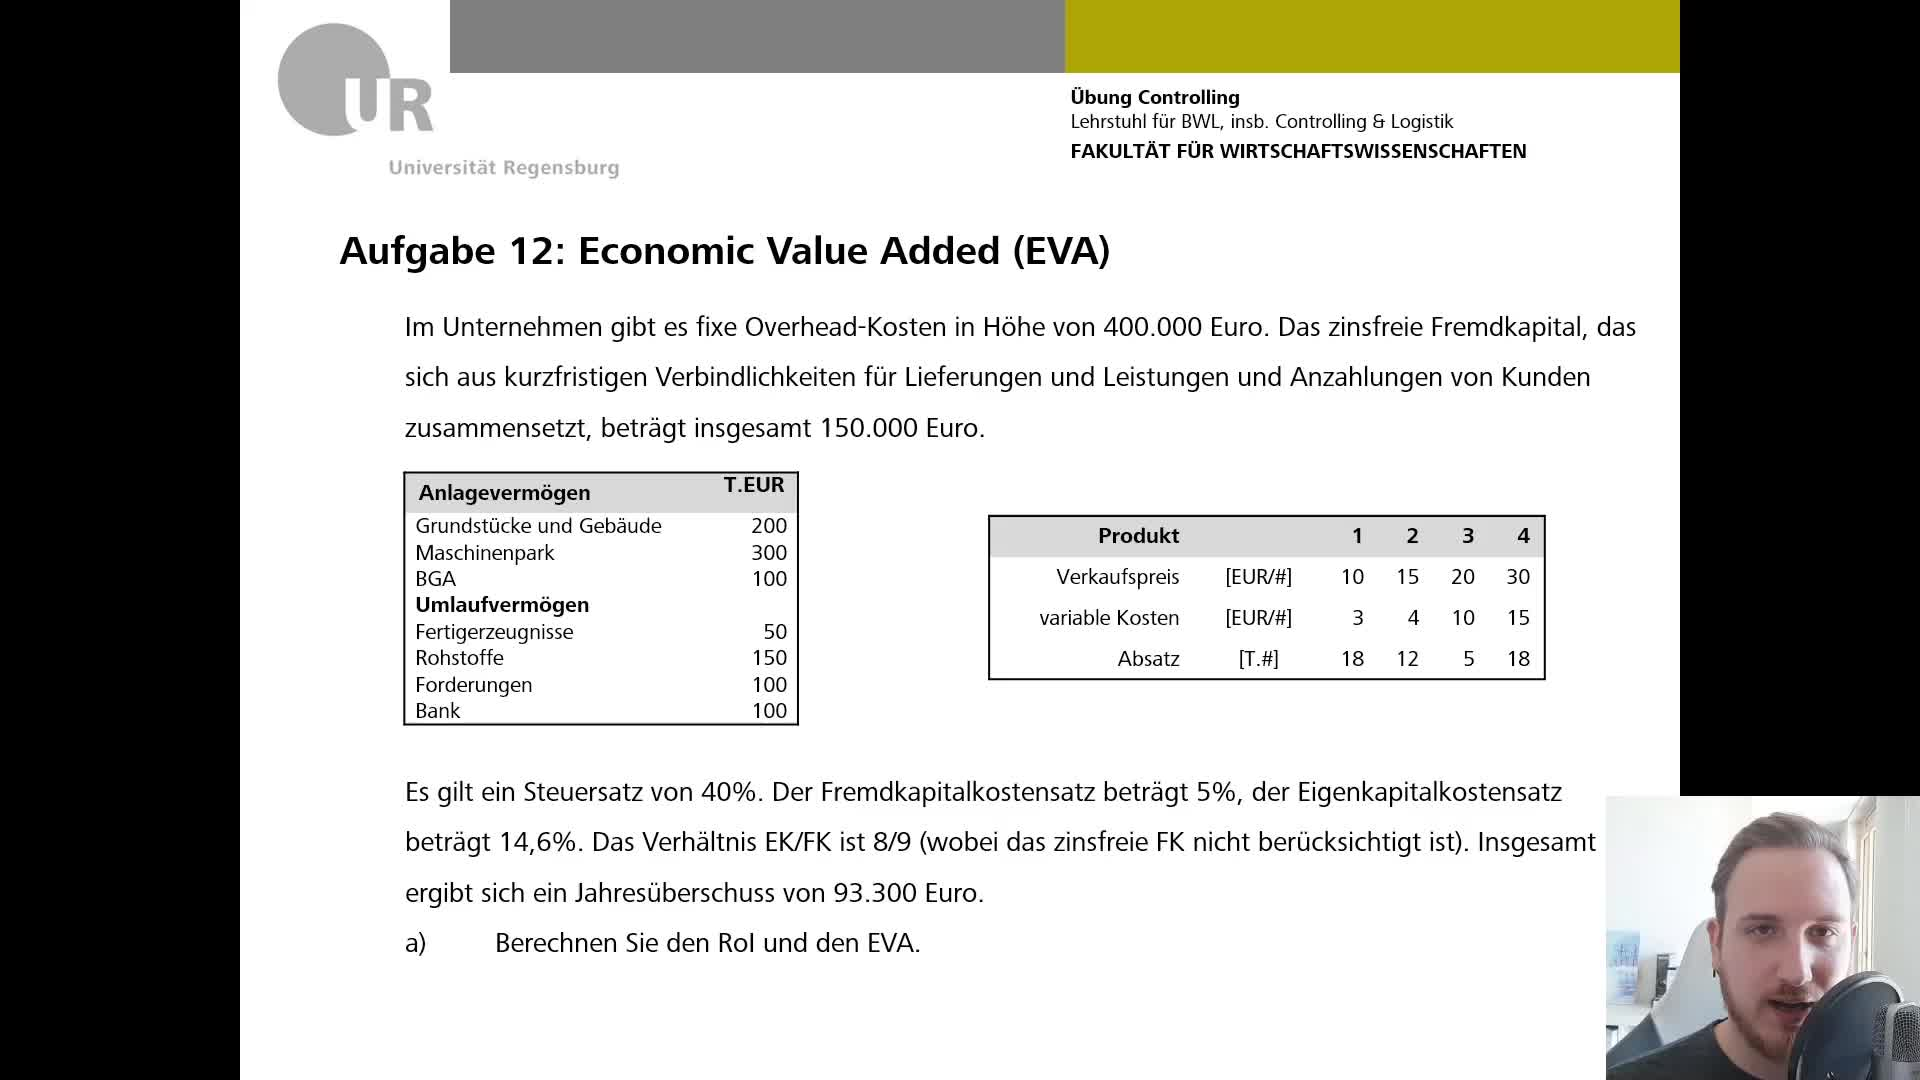 Controlling Übung VI - Übungsaufgabe 12: Economic Value Added